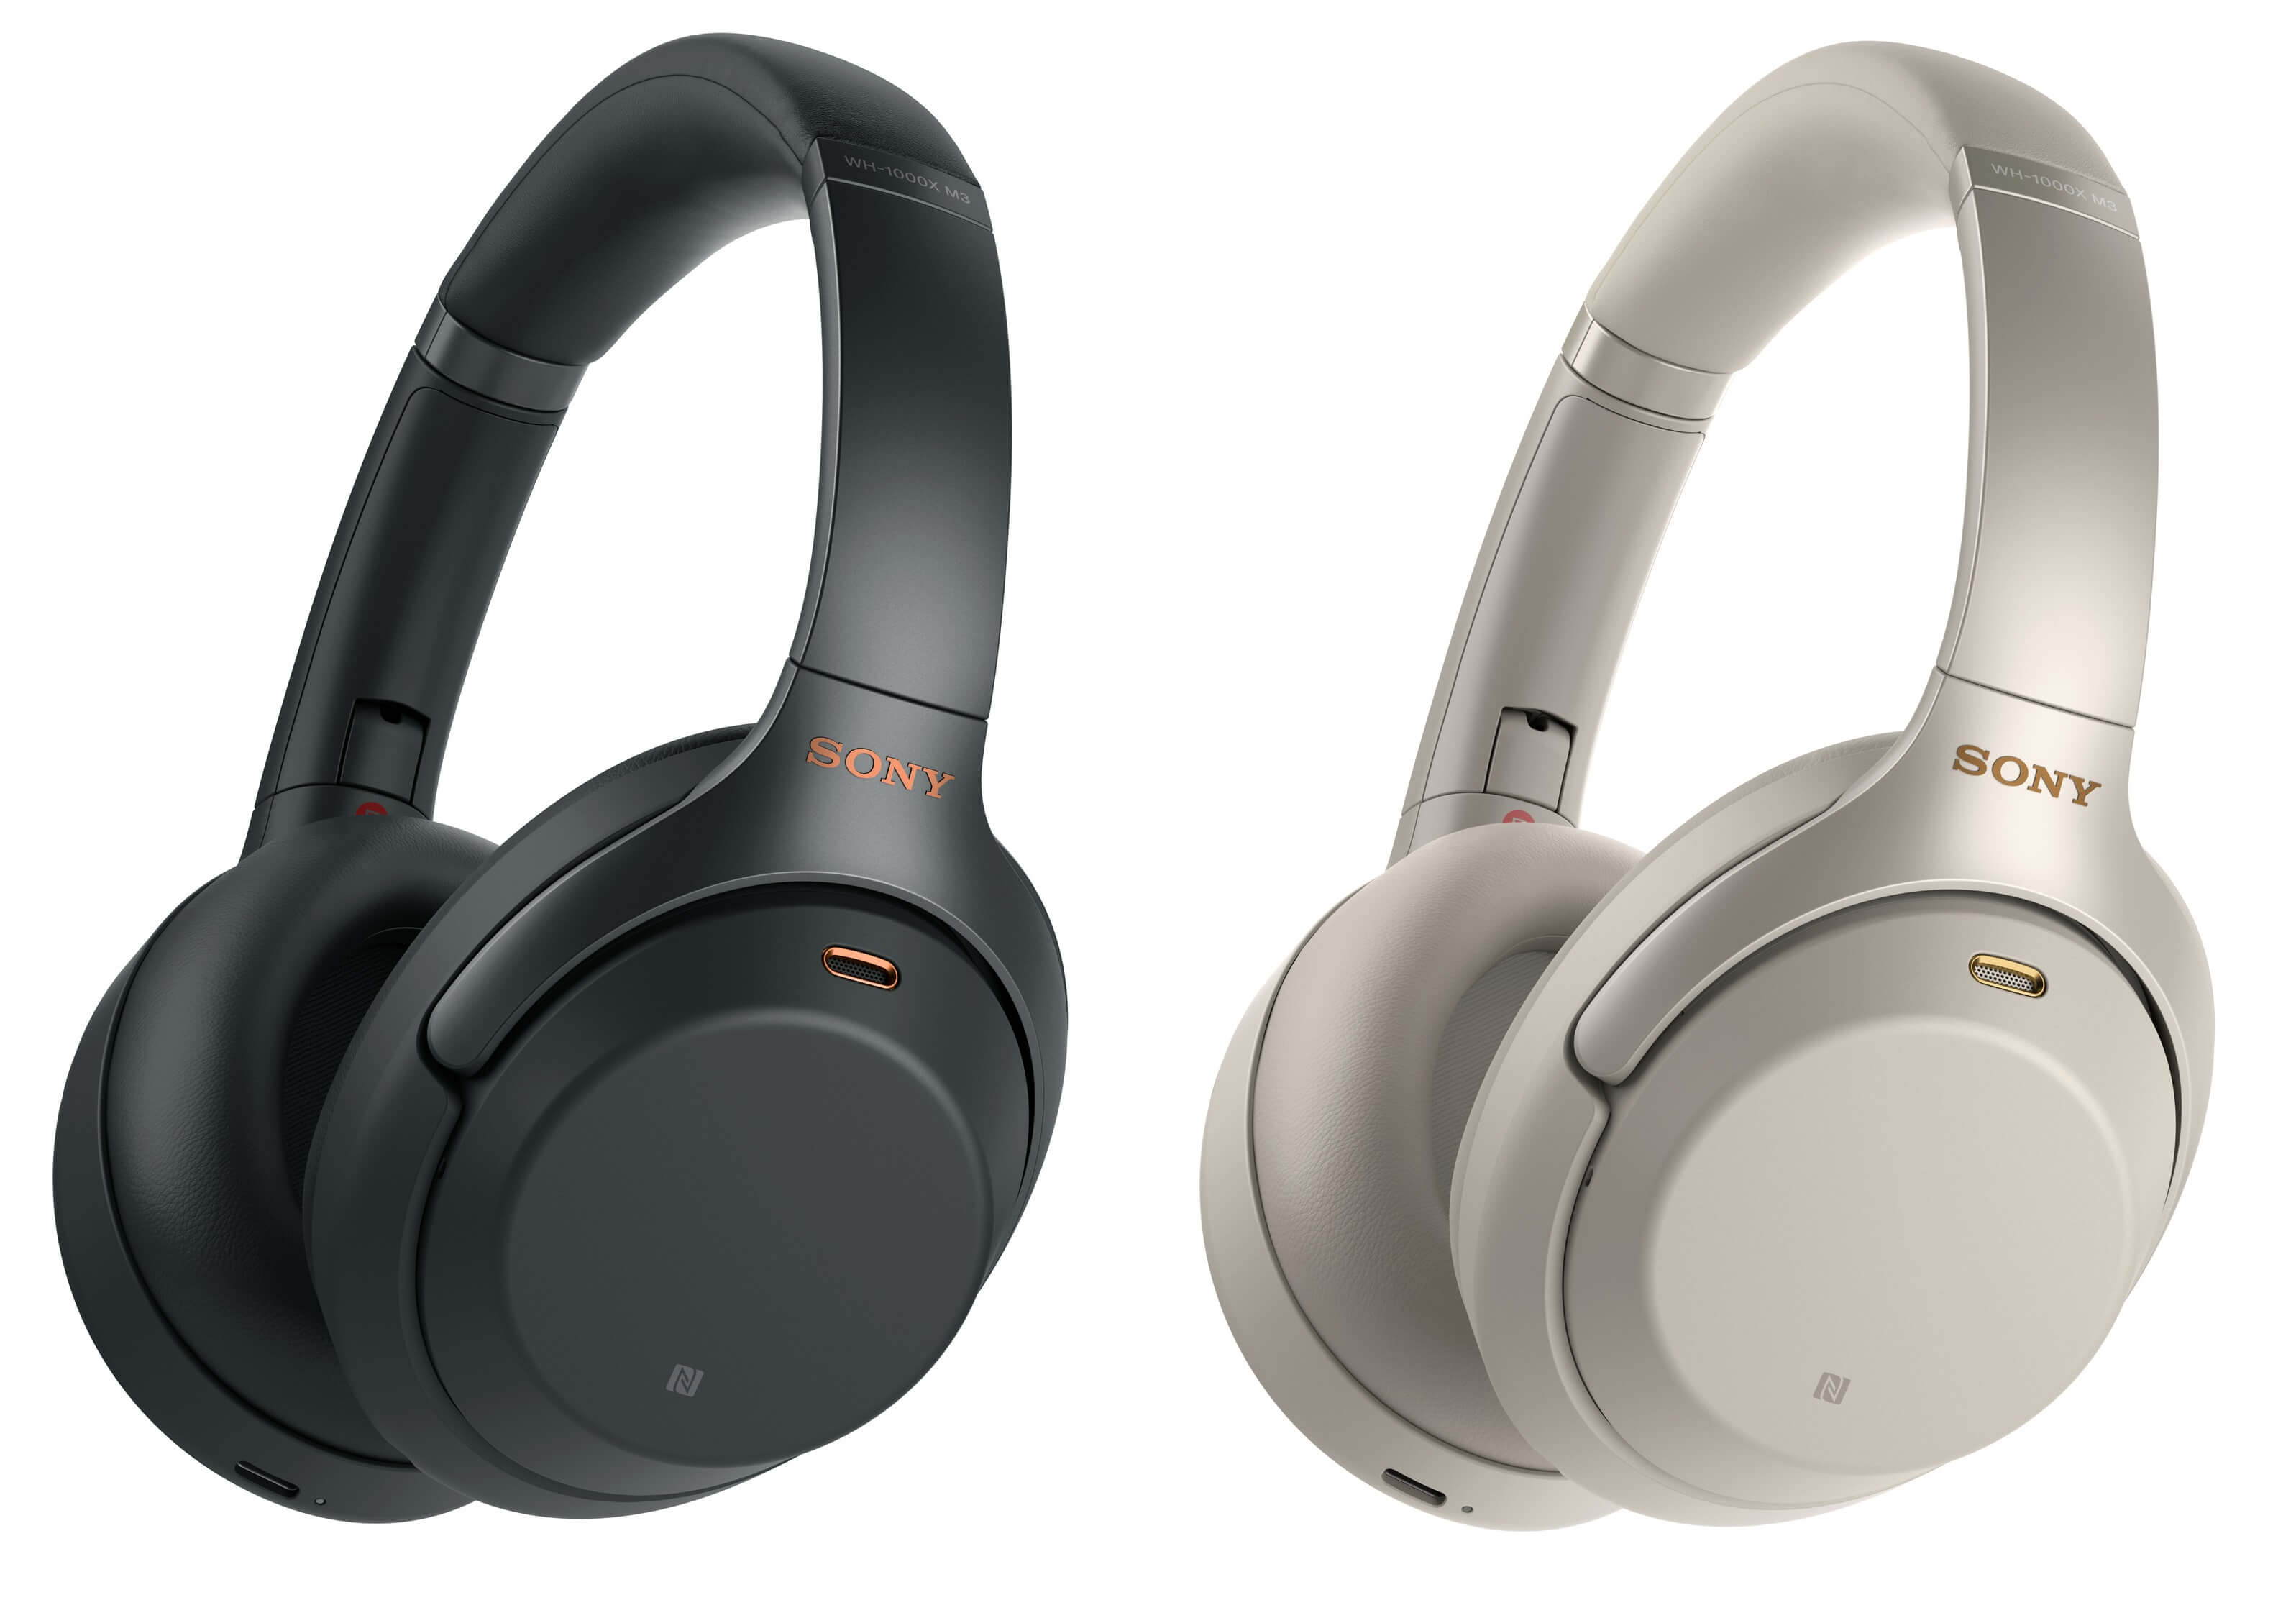 Sony Proves their Prowess in Noise Cancelling with the WH-1000XM3 Wireless Headphones: Coming to PH this October!